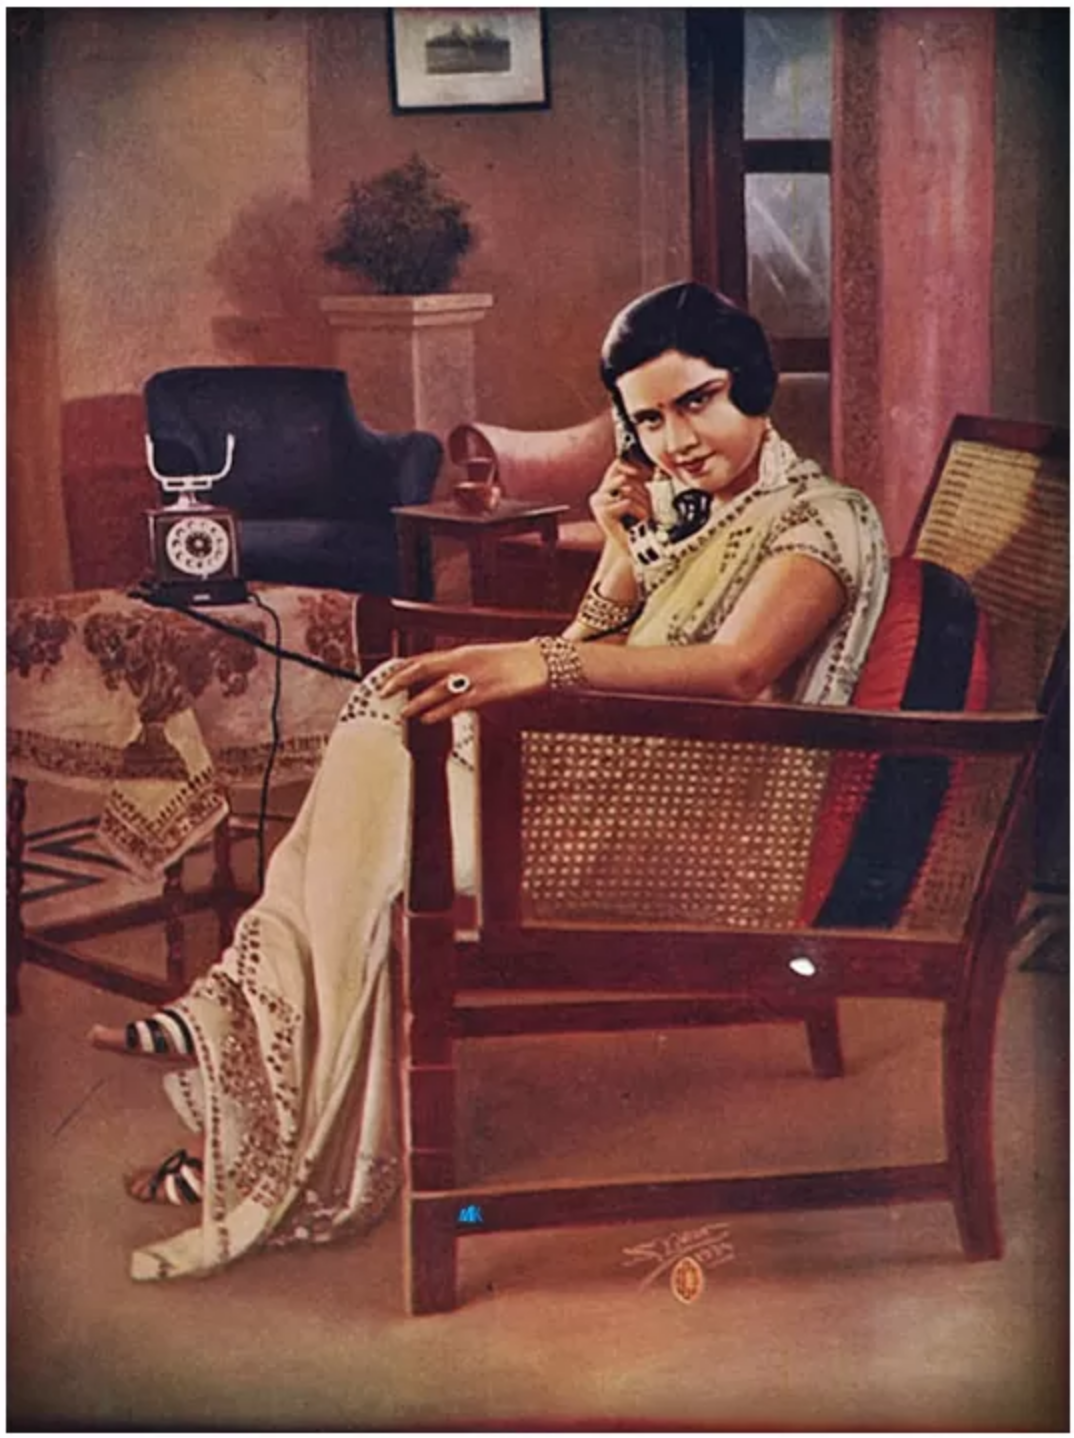 illustration of an Indian woman sitting in a chair while talking on the phone